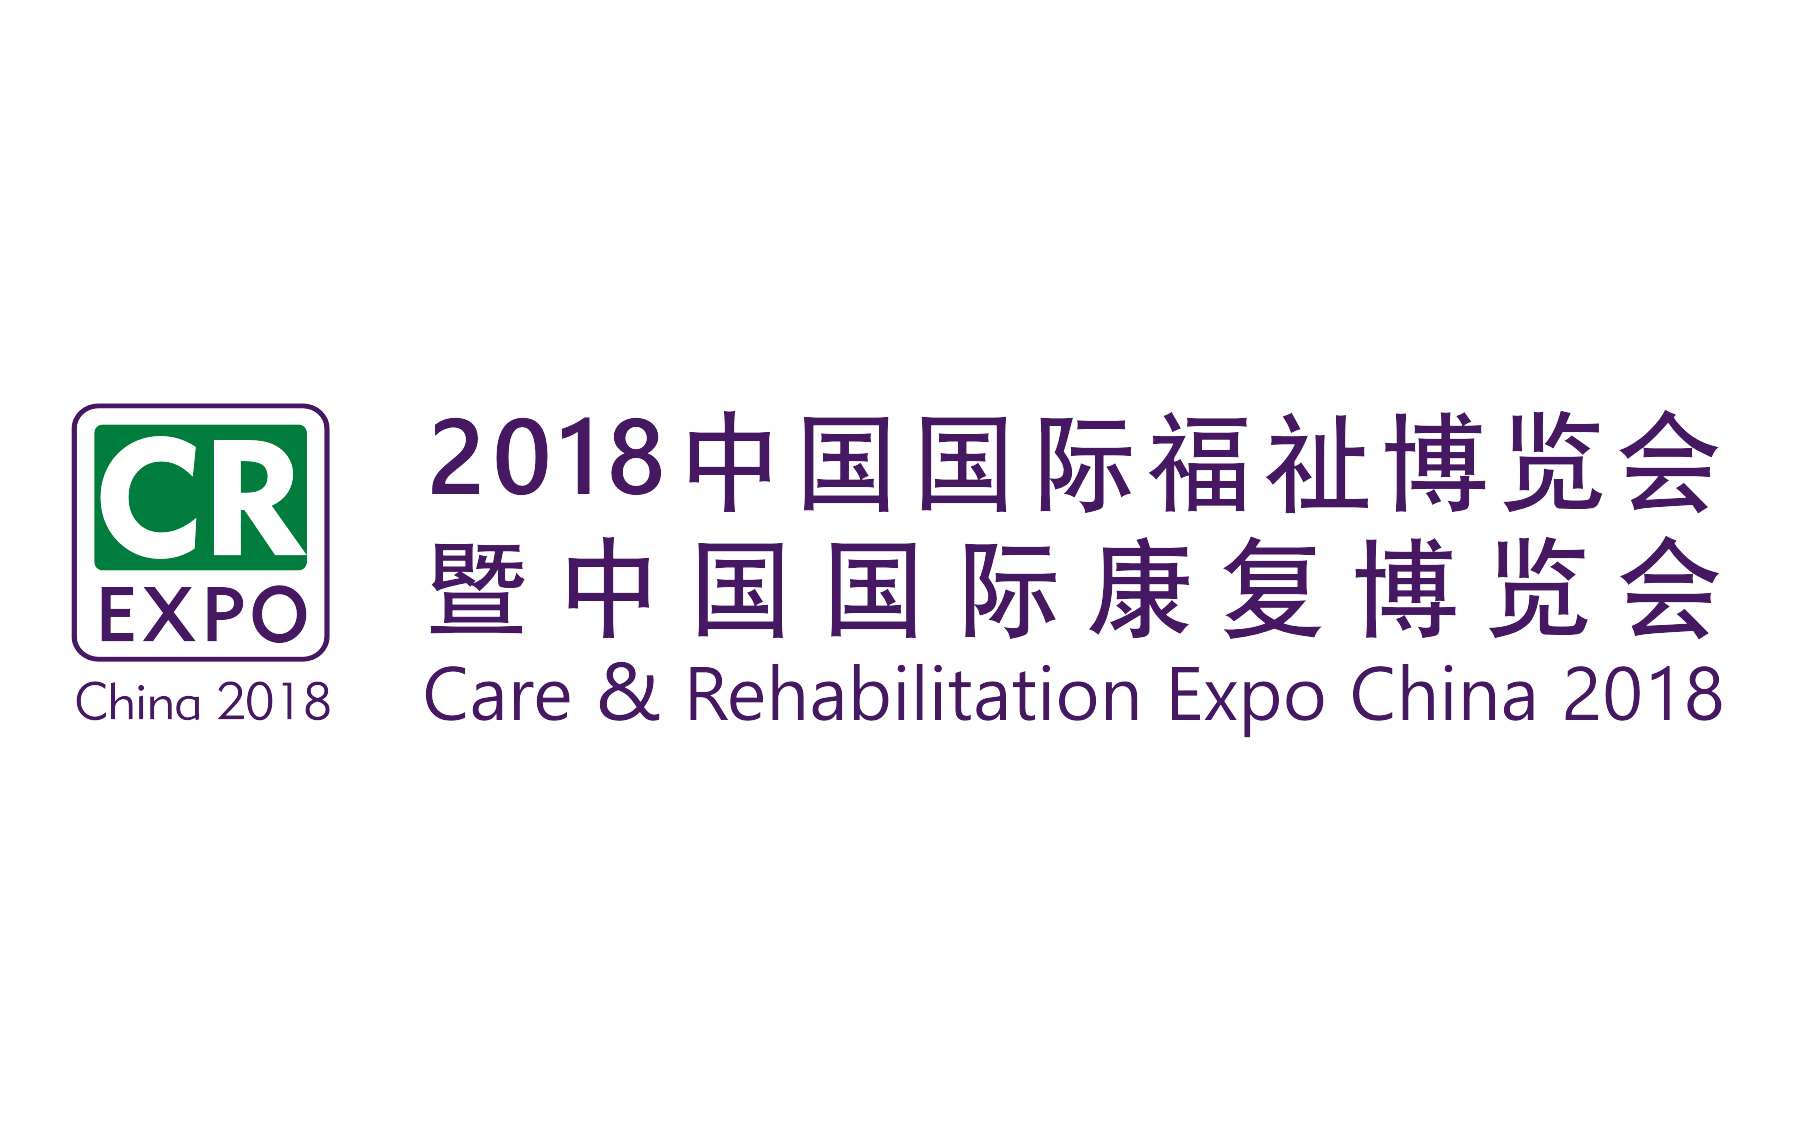 Care & Rehabilitation Expo China 2018